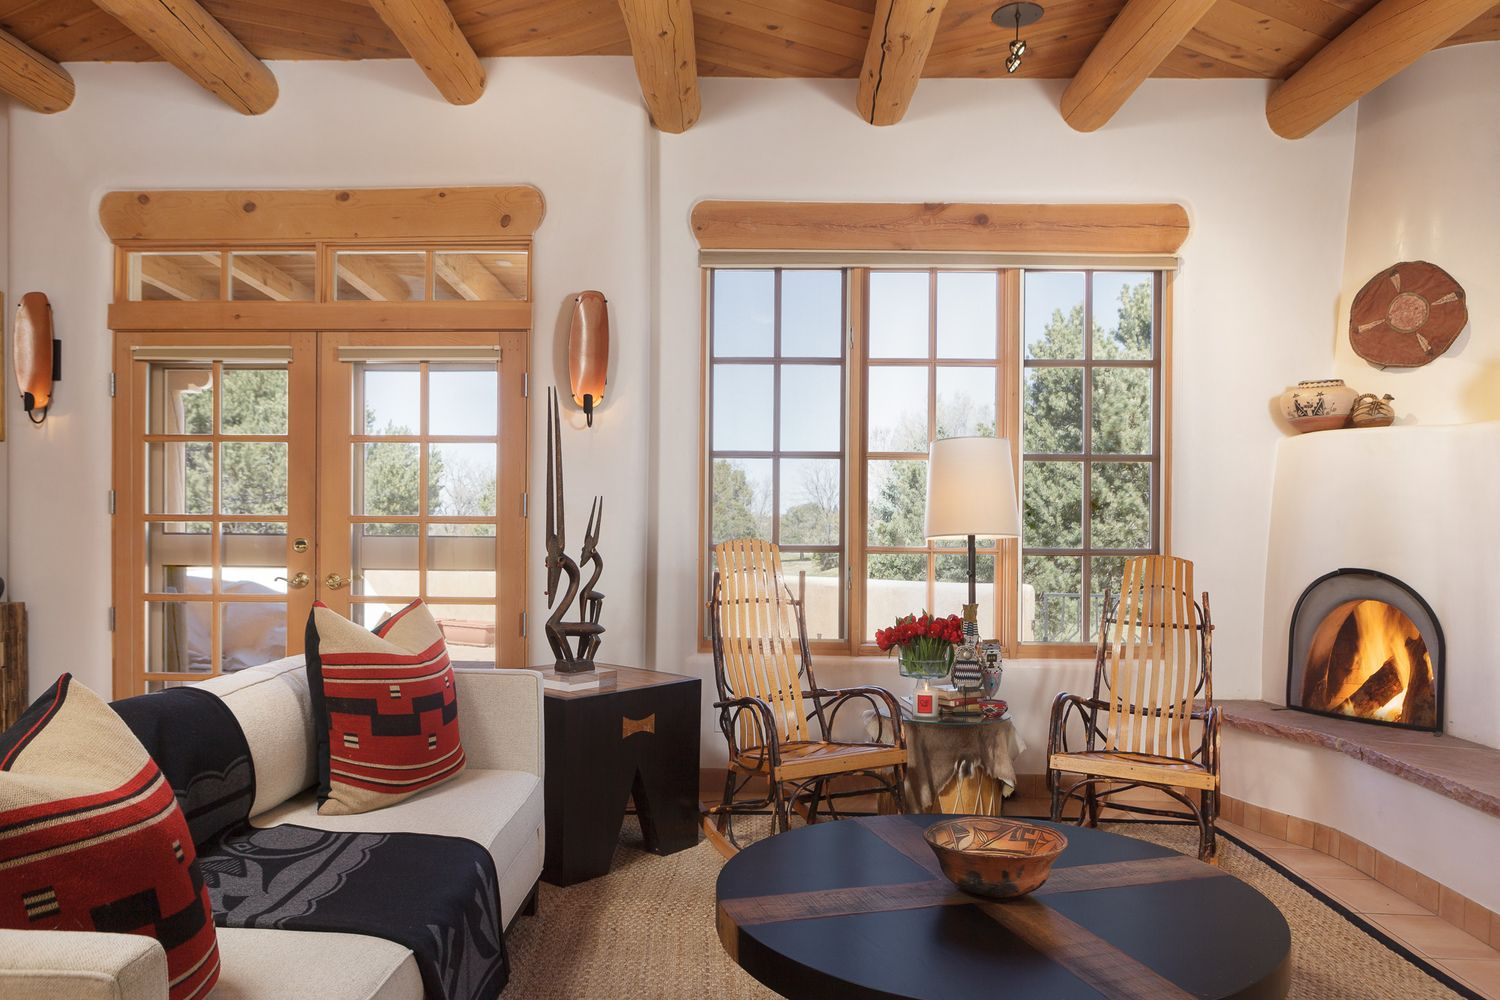 New Mexico Style, interior design, southwest style | House makeover ...